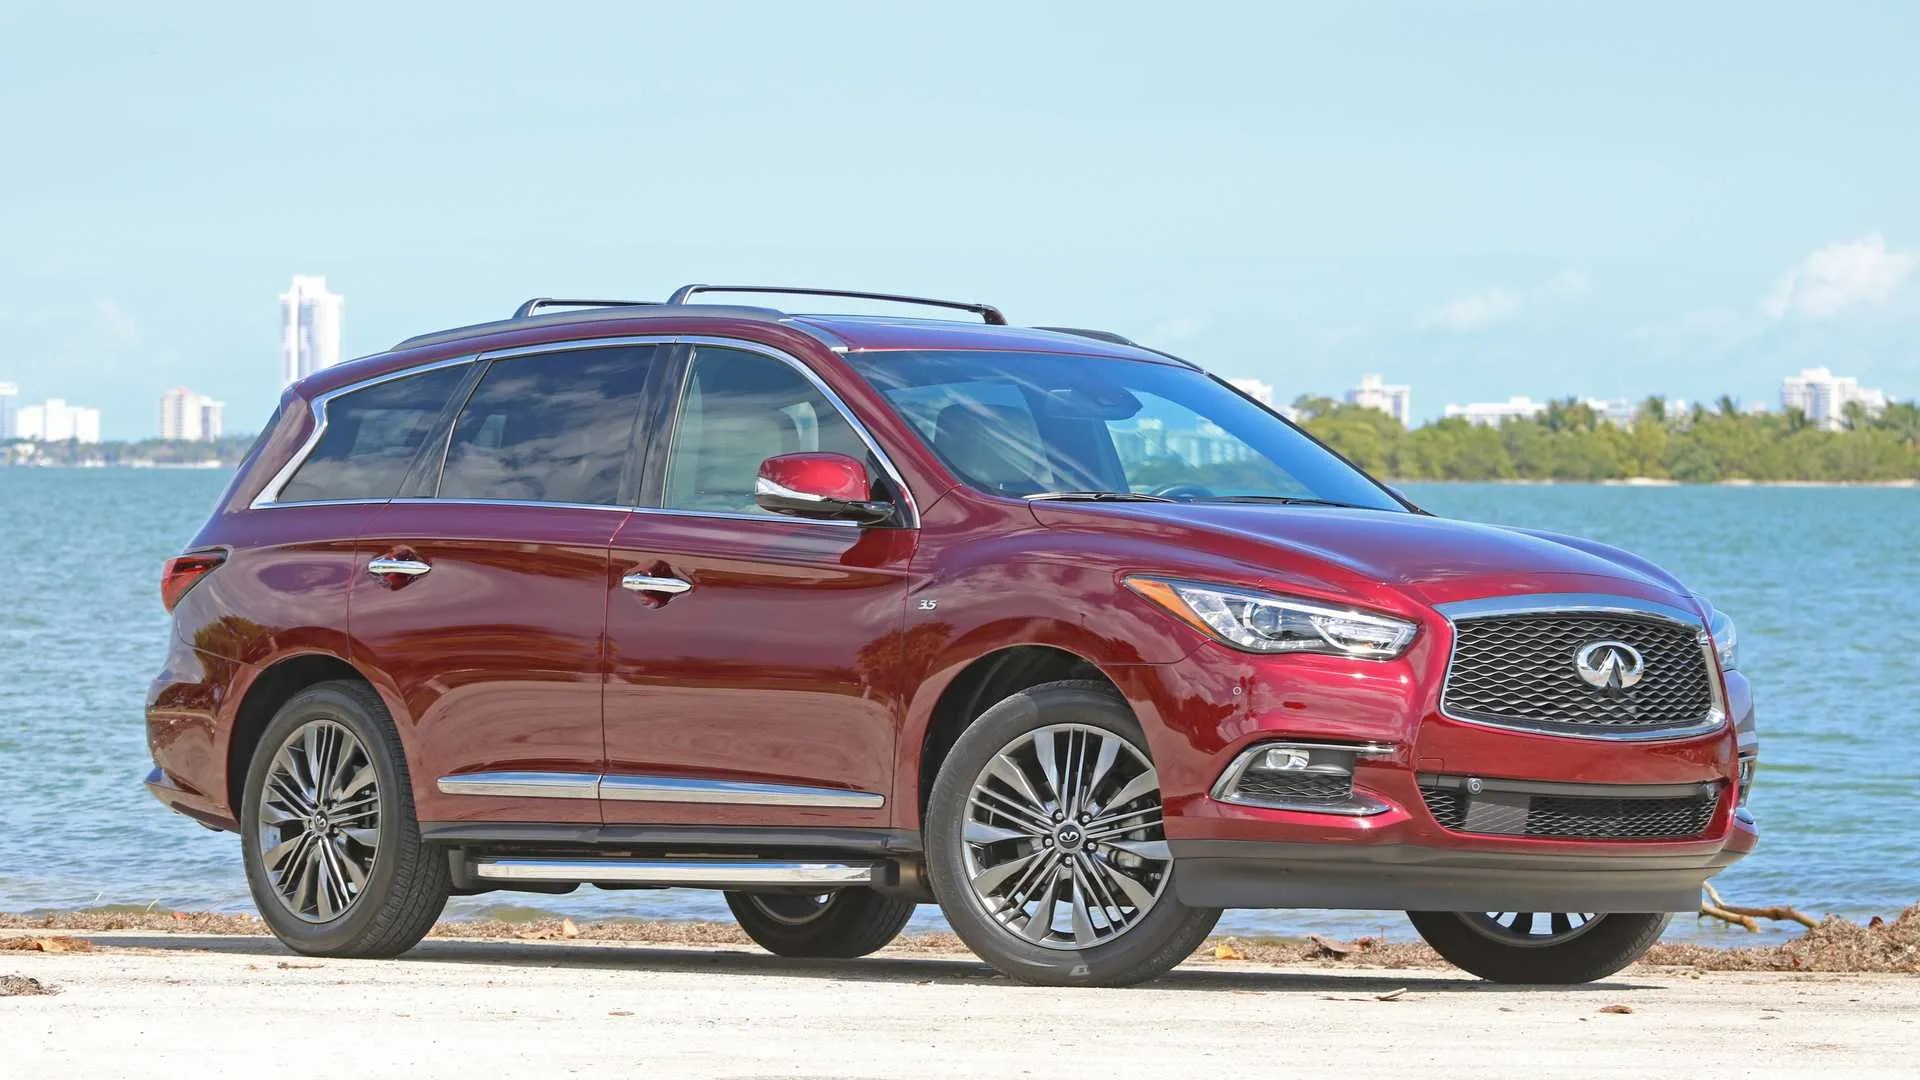 2019 infiniti qx60 limited here s what